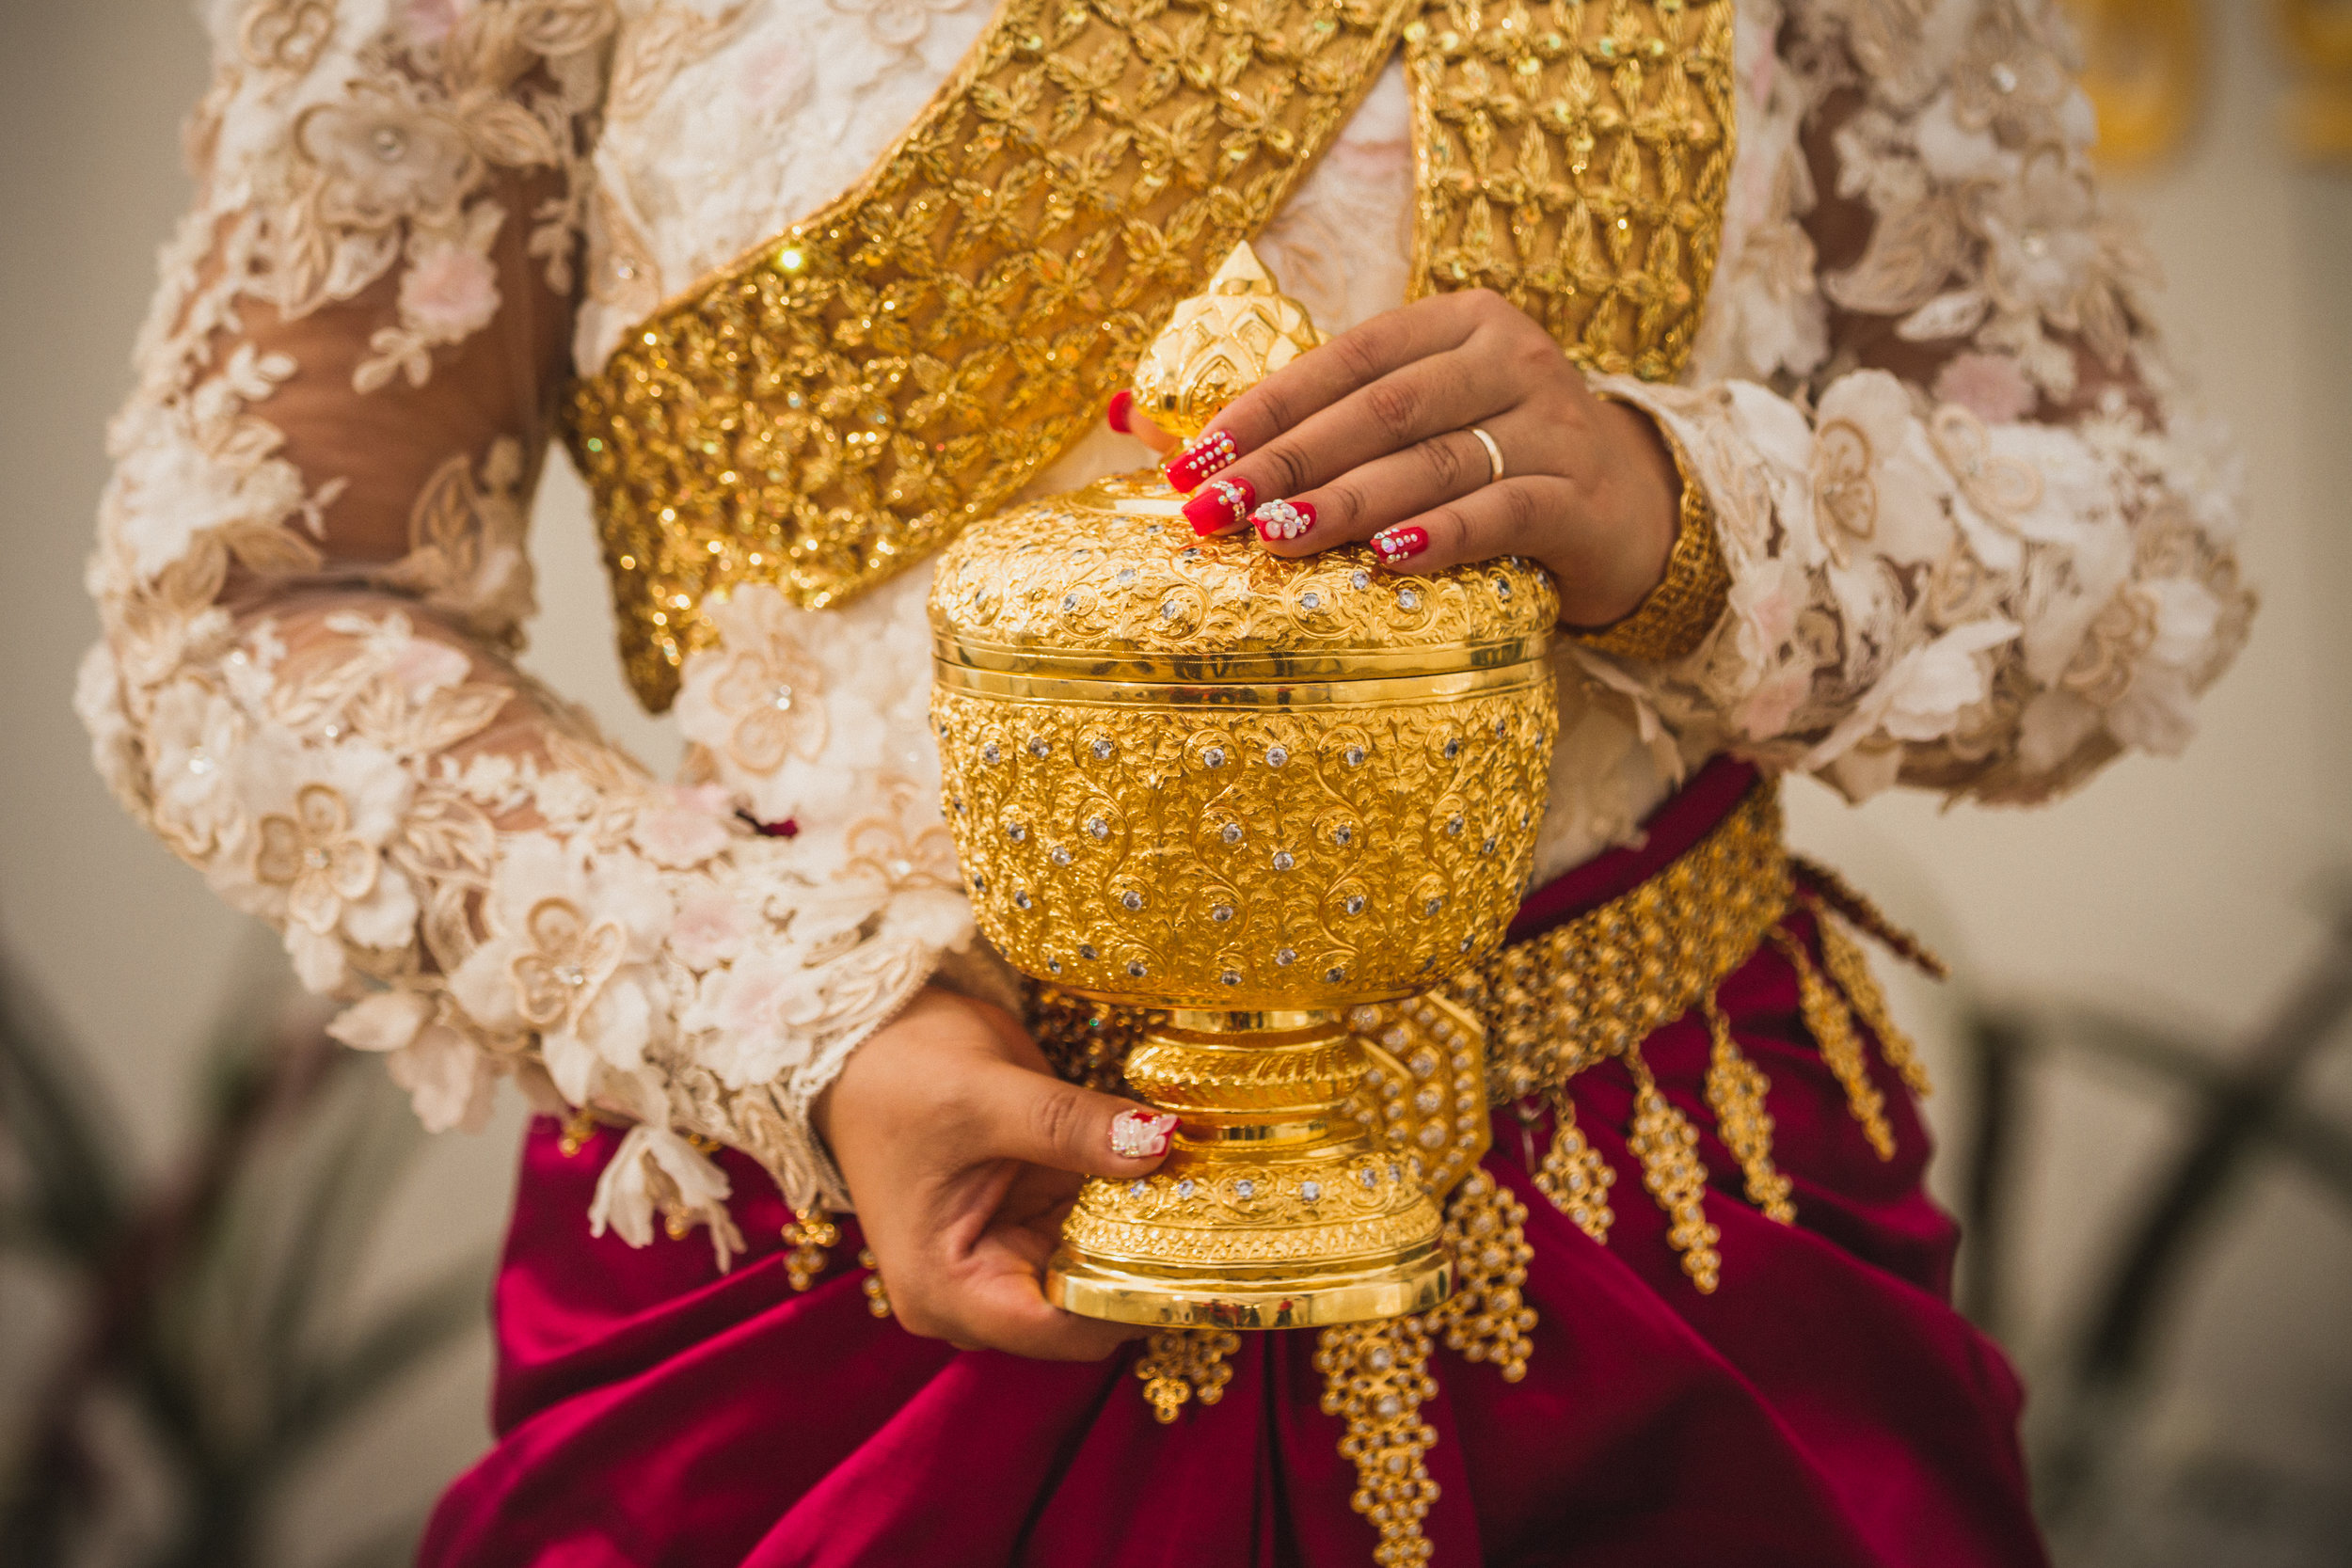 A bride holds a traditional Khmer vessel in Phnom Penh, Cambodia. Destination wedding photography (c) Amy Stallard